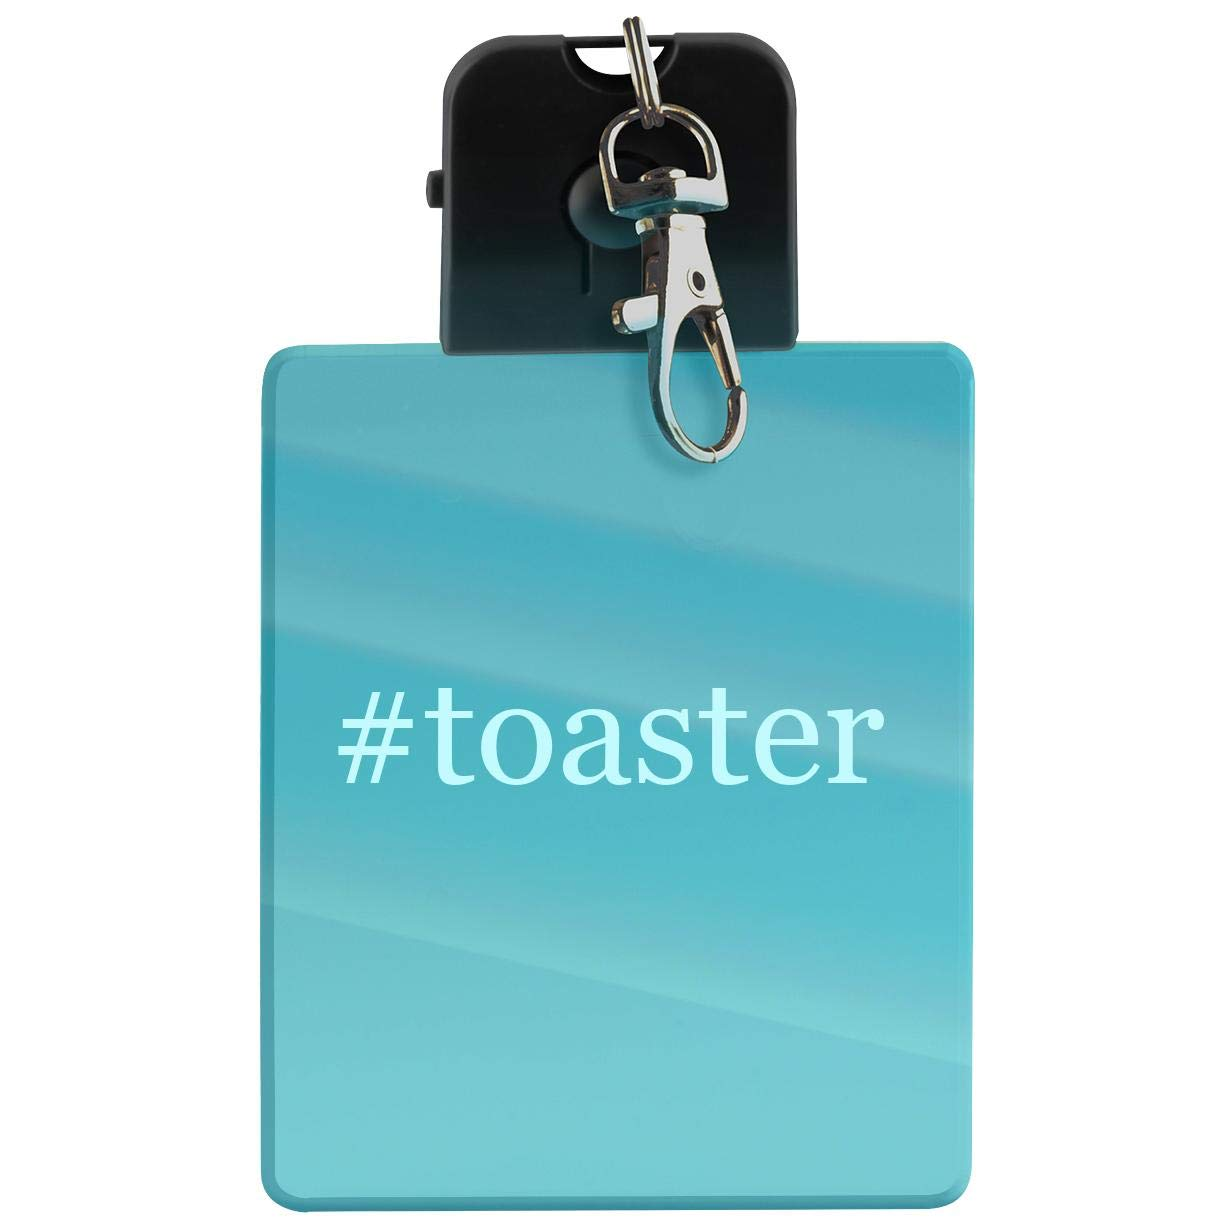 #toaster - Hashtag LED Key Chain with Easy Clasp